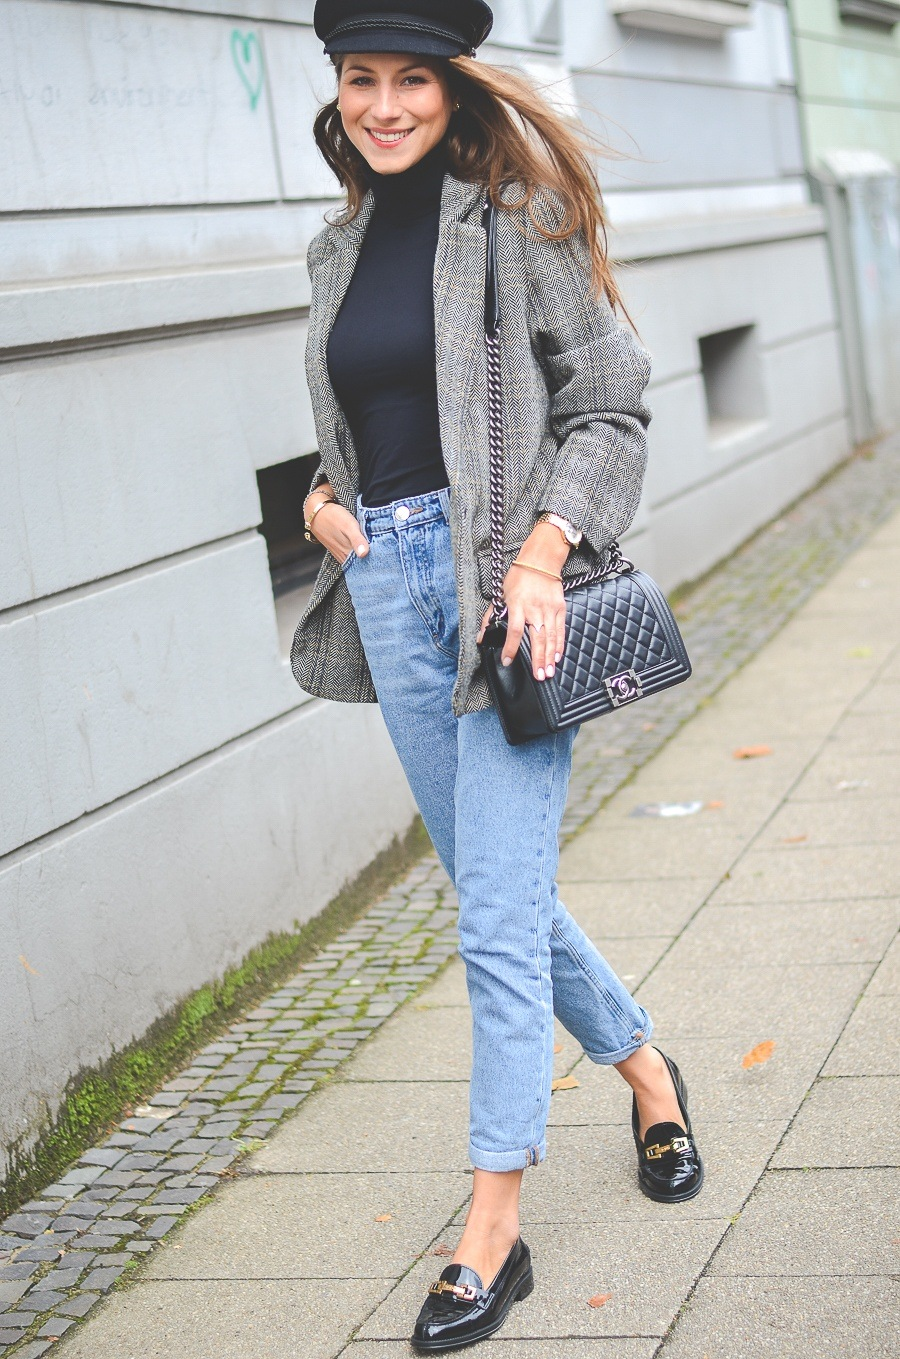 mom jeans loafers hat preppy outfit fashion blogger chanel boy bag oversized blazer